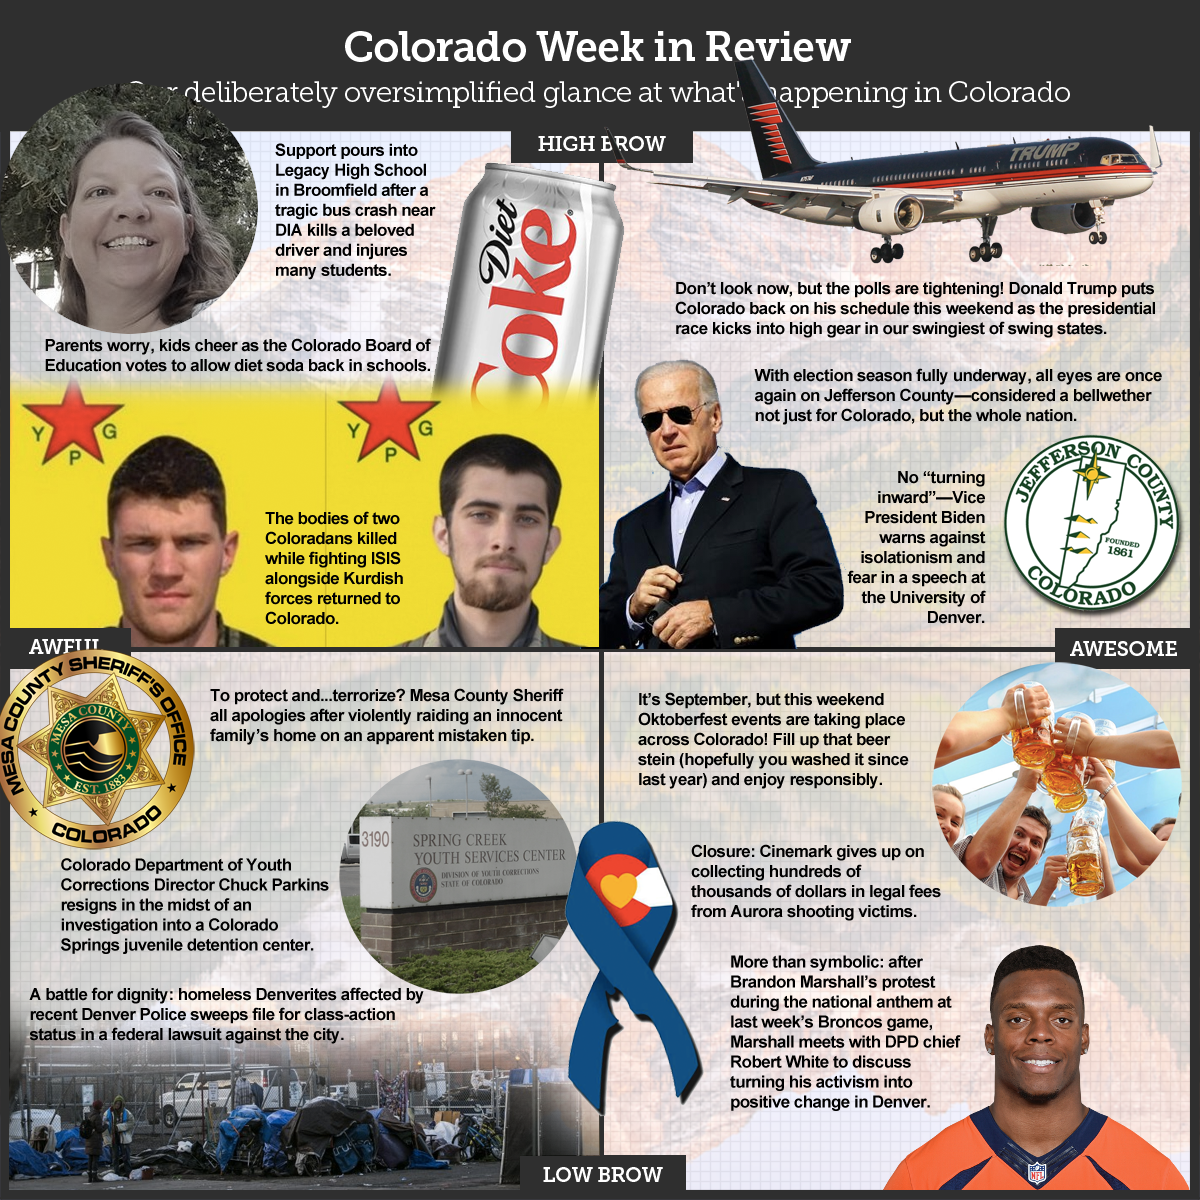 Da Colo Theater Shooting Victims Being Harassed: Colorado Week In Review